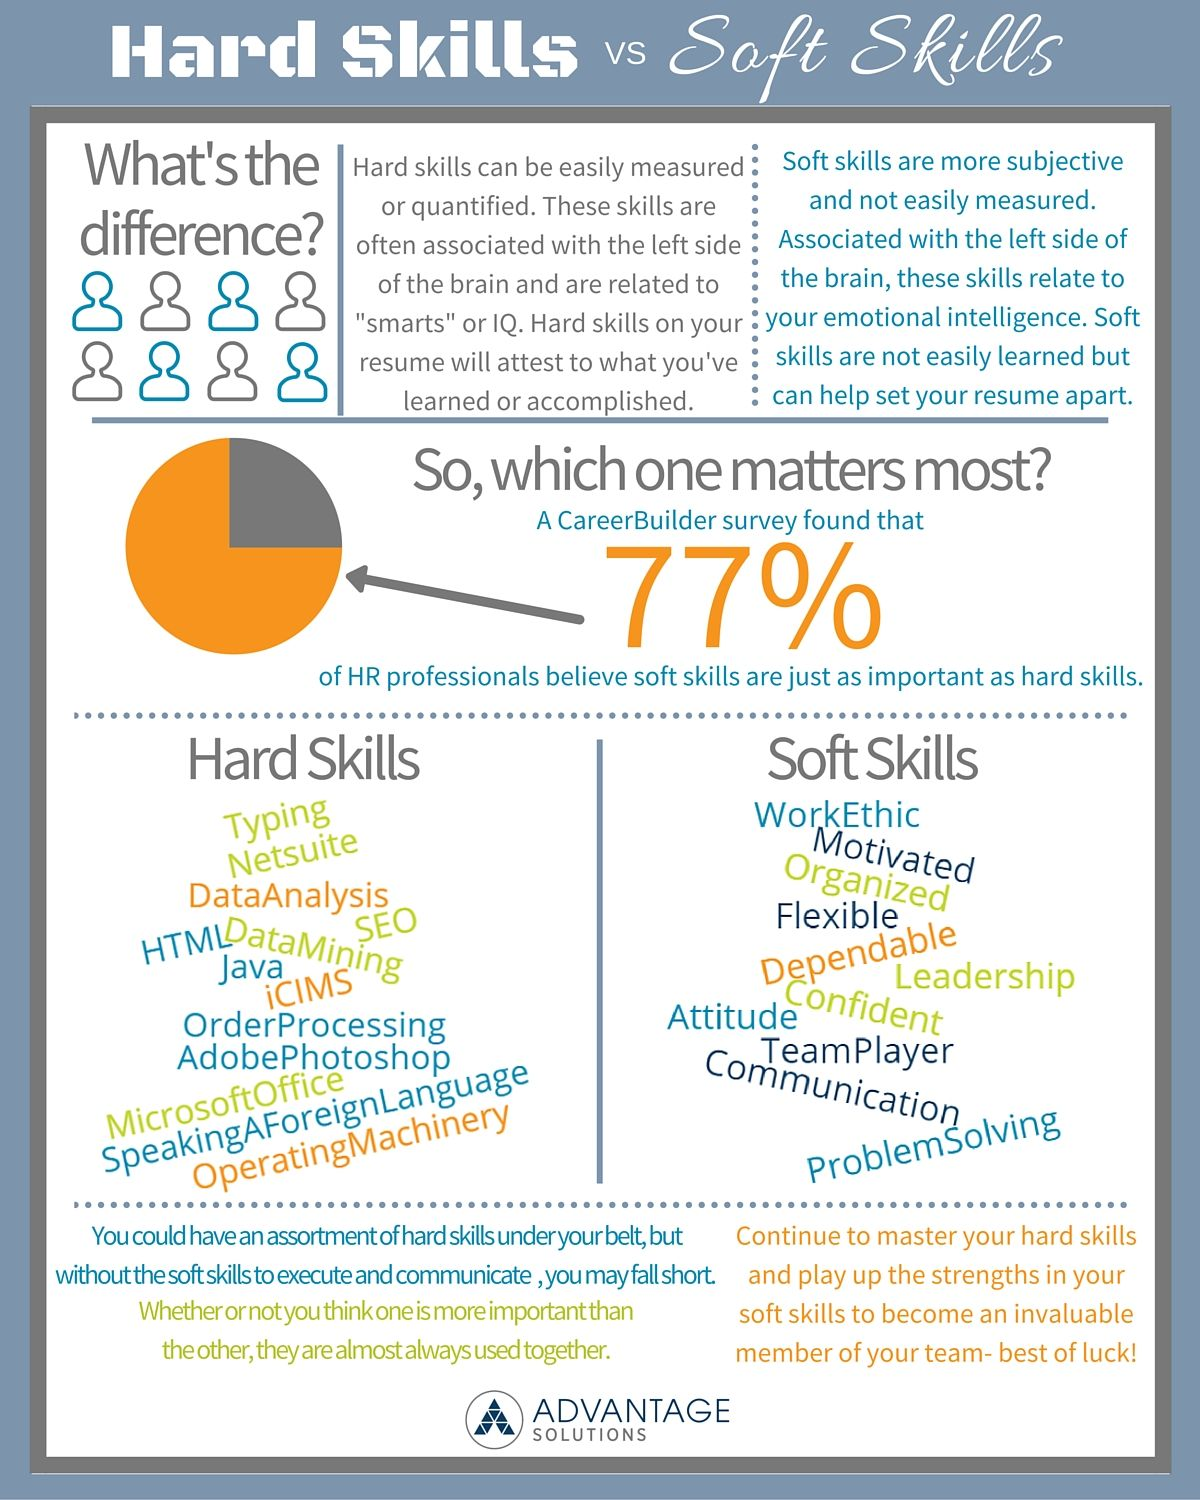 Hard Skills Vs Soft Skills Which Skills Are Most Important And How Do They Affect Your Chances Of Employment Work Skills Resume Skills Job Interview Advice